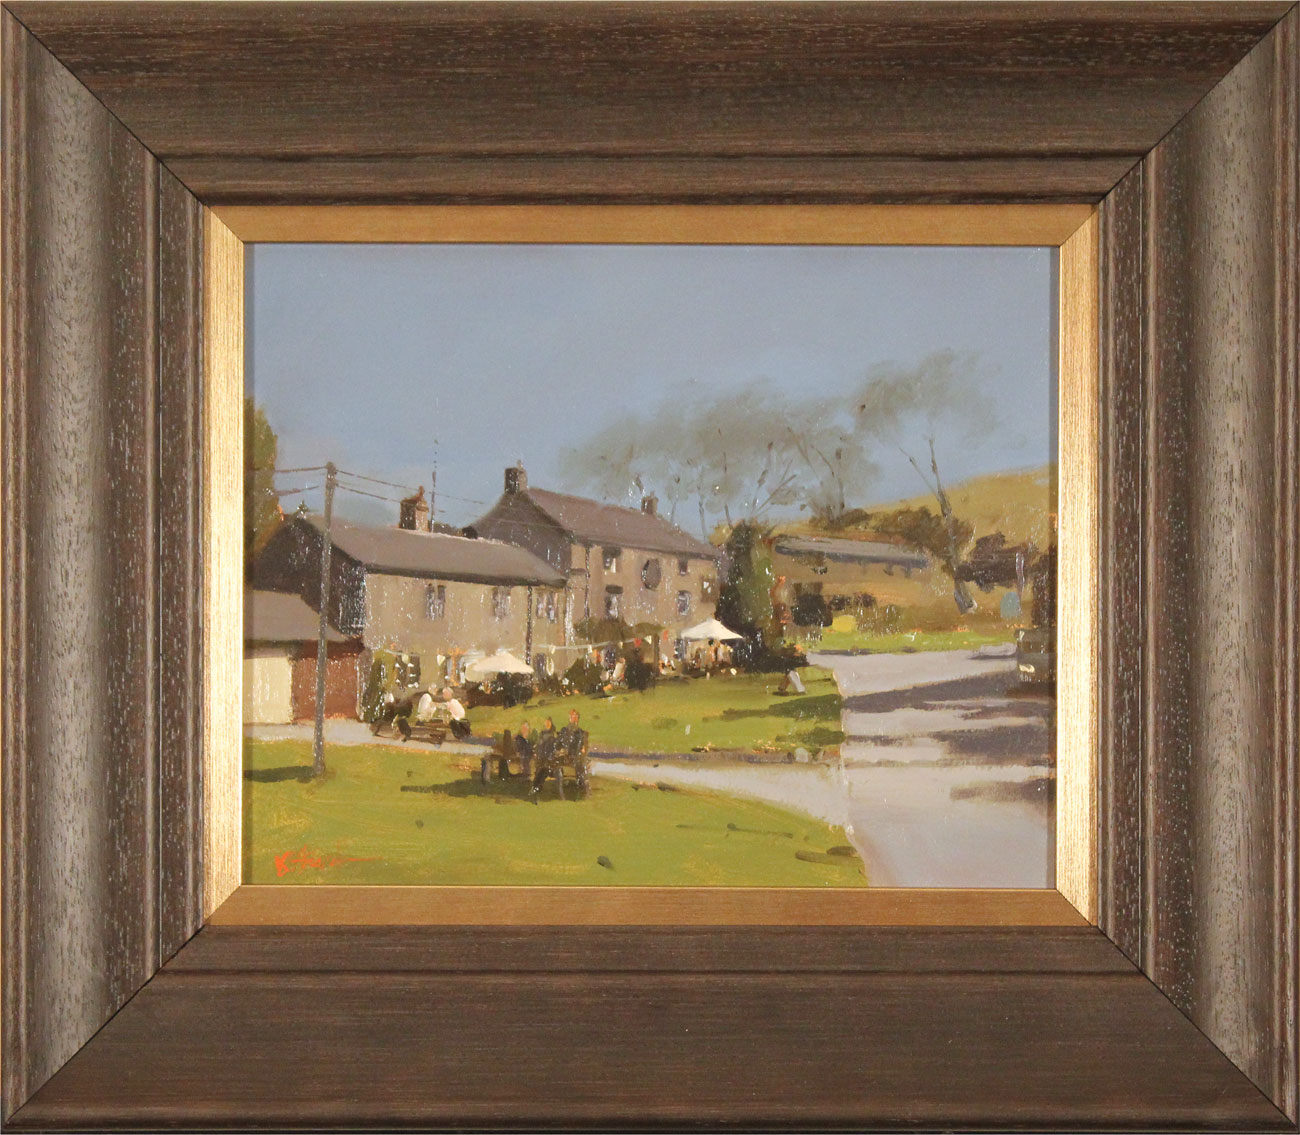 Michael John Ashcroft, AROI, Original oil painting on panel, A Pint at the Lister Arms, Malham, Yorkshire Click to enlarge